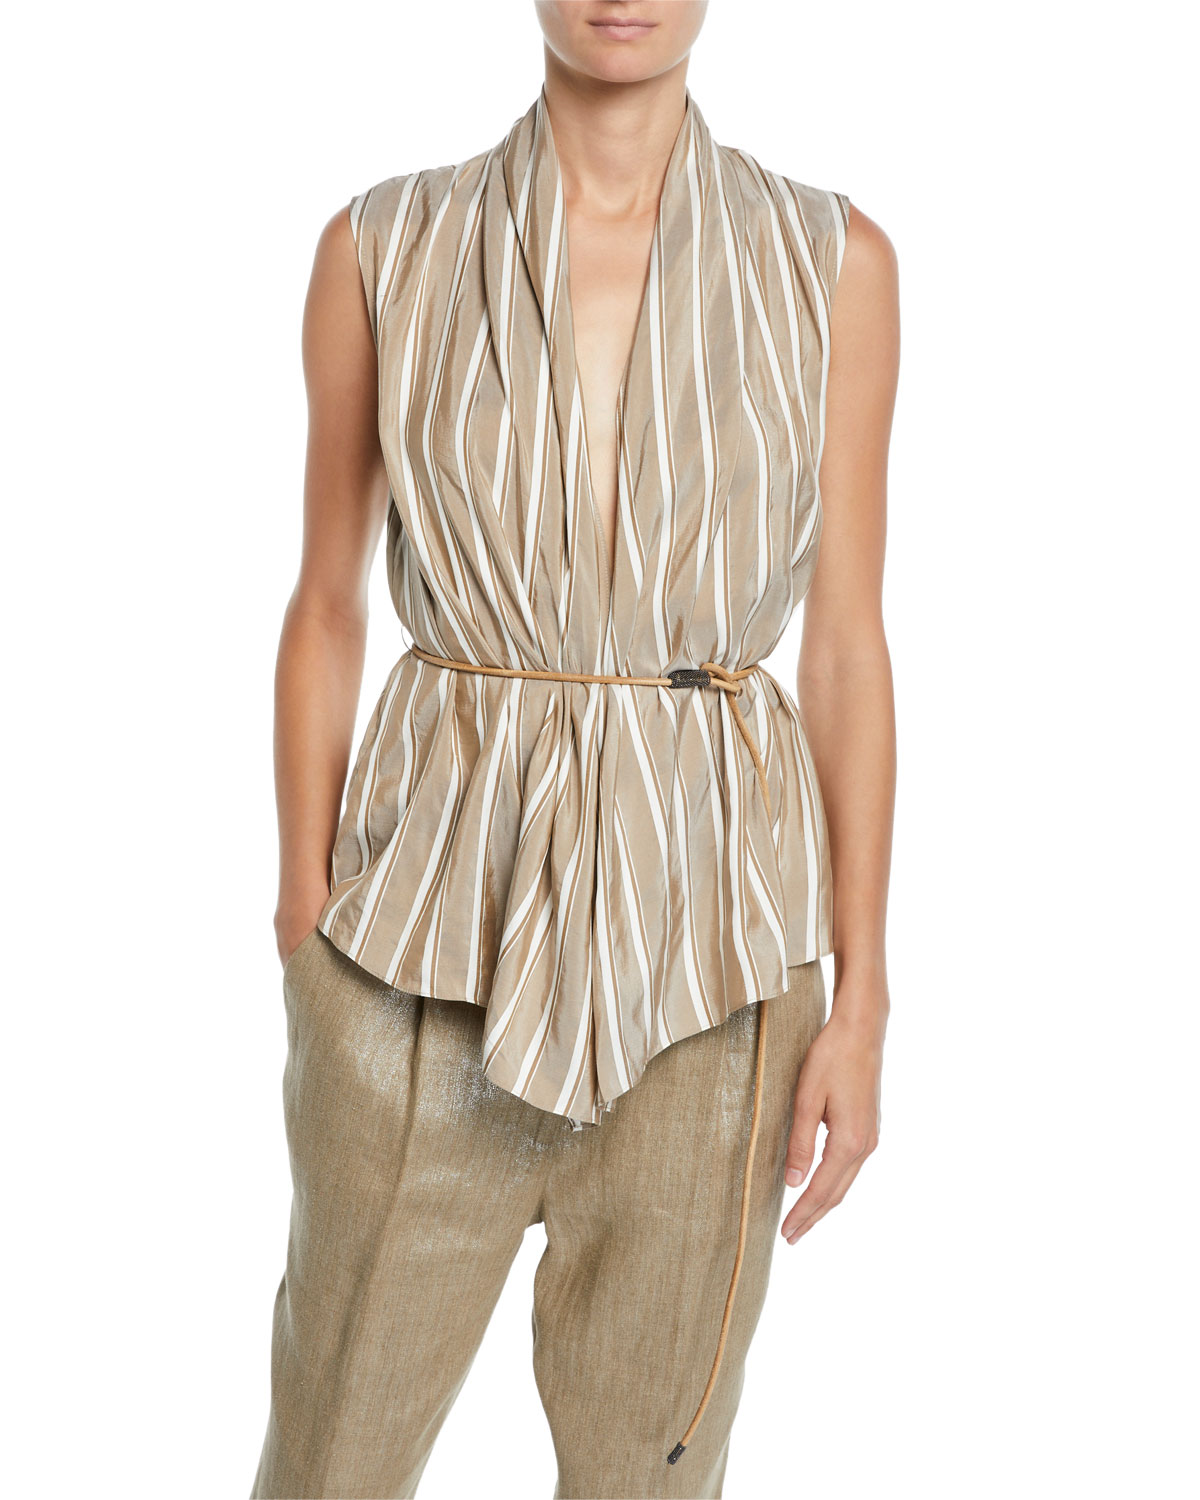 Brunello Cucinelli Tops SLEEVELESS STRIPED SILK WRAP TOP W/ LEATHER BELT